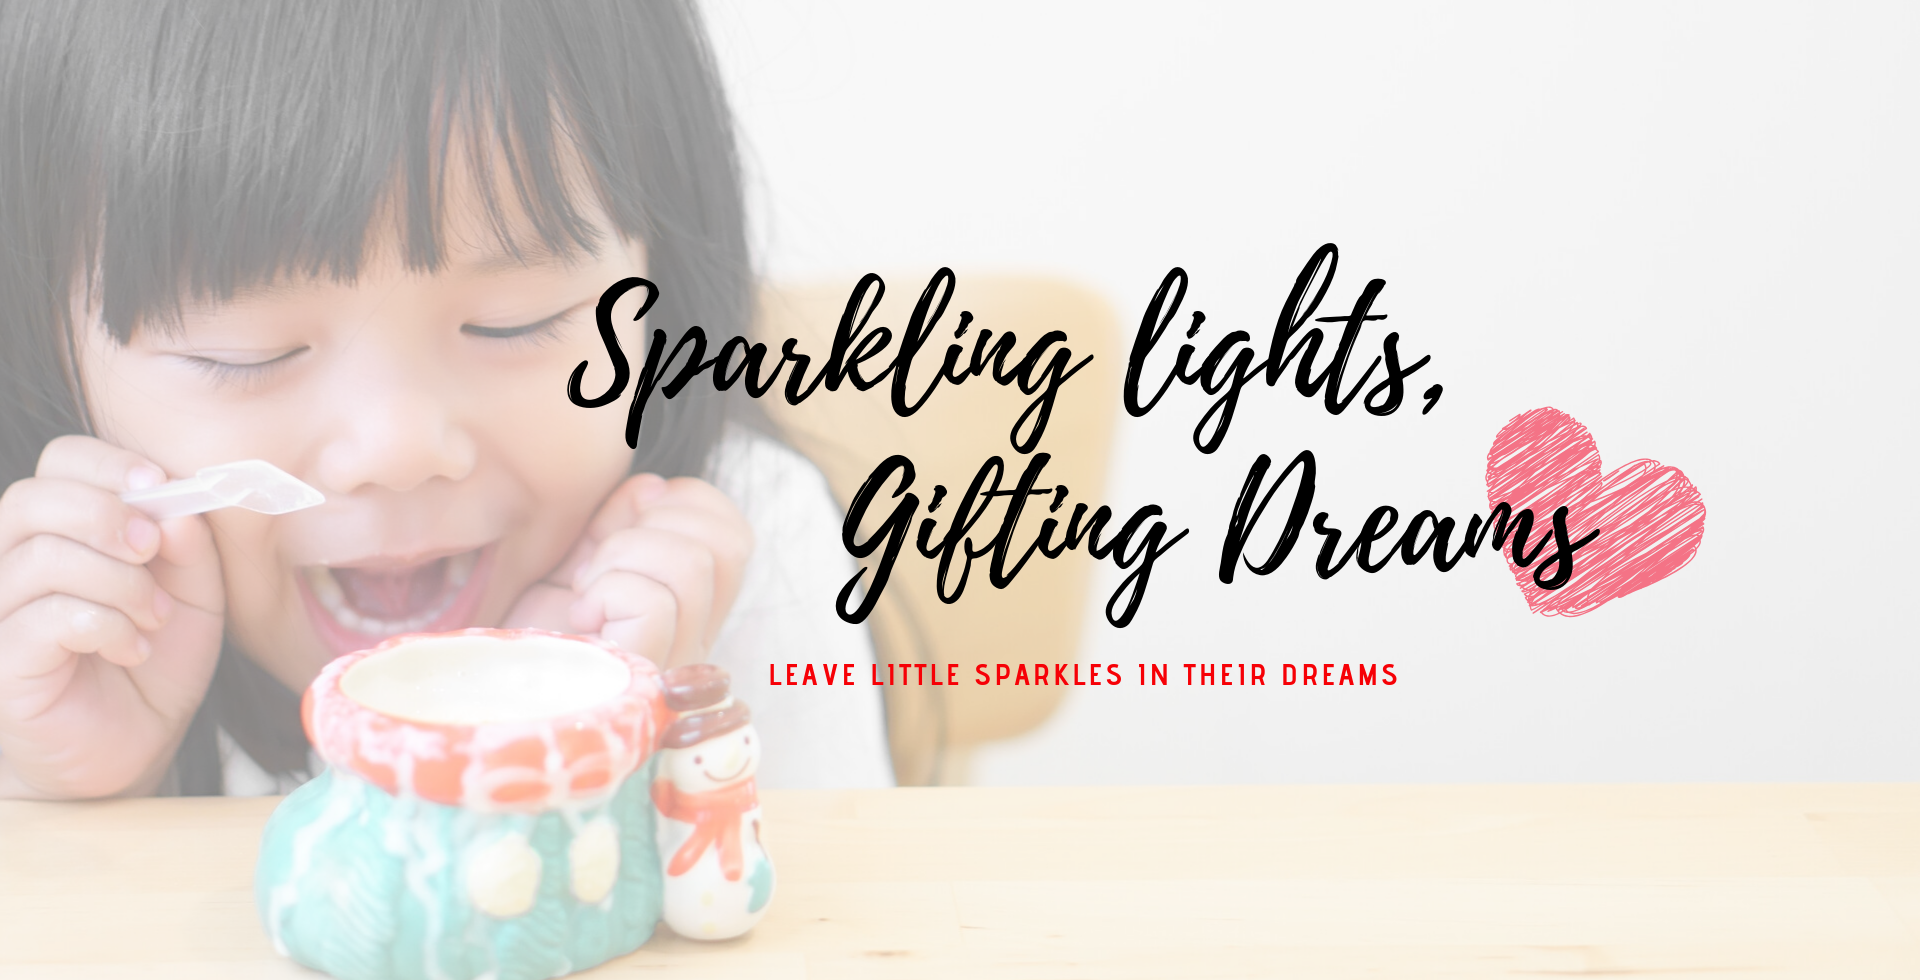 Sparking Lights, Gifting Dreams